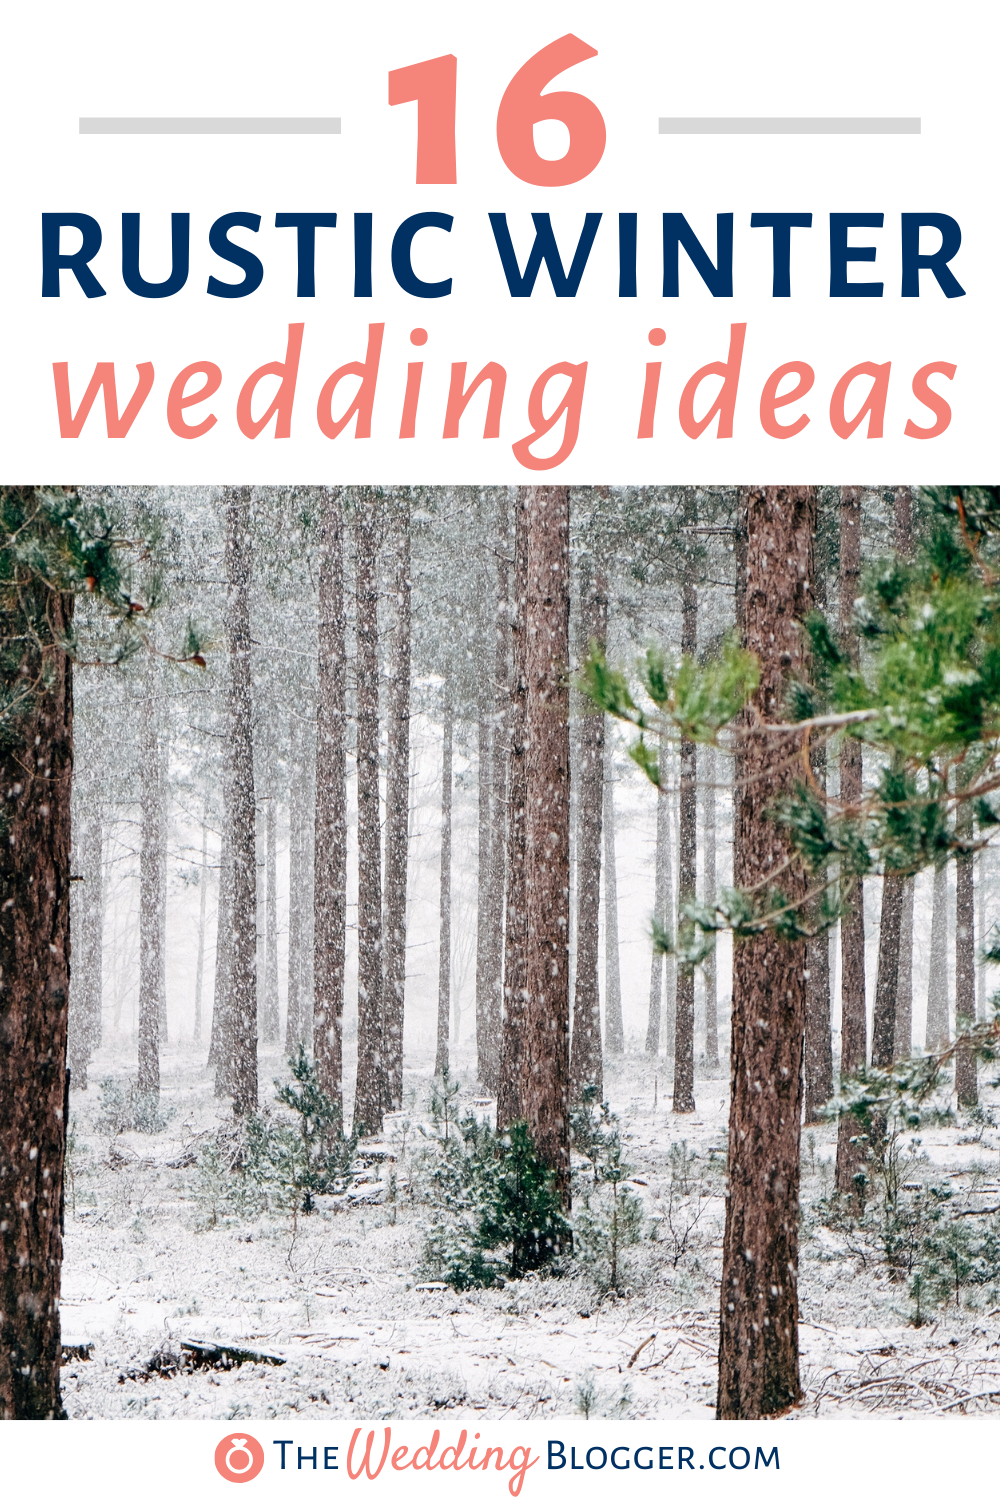 16 Rustic Winter Wedding Ideas -    Check out these rustic winter wedding ideas that are great for incorporating into your winter wedding day decor. If you're wondering what rustic winter themed wedding decorations you could incorporate into your special day, here are some great ideas for making your wedding reception feel rustic and winter inspired. These are fun and creative ways to have a rustic winter themed wedding ideas. #winterwedding   16 Rustic Winter Wedding Ideas  The Wedding Blogger